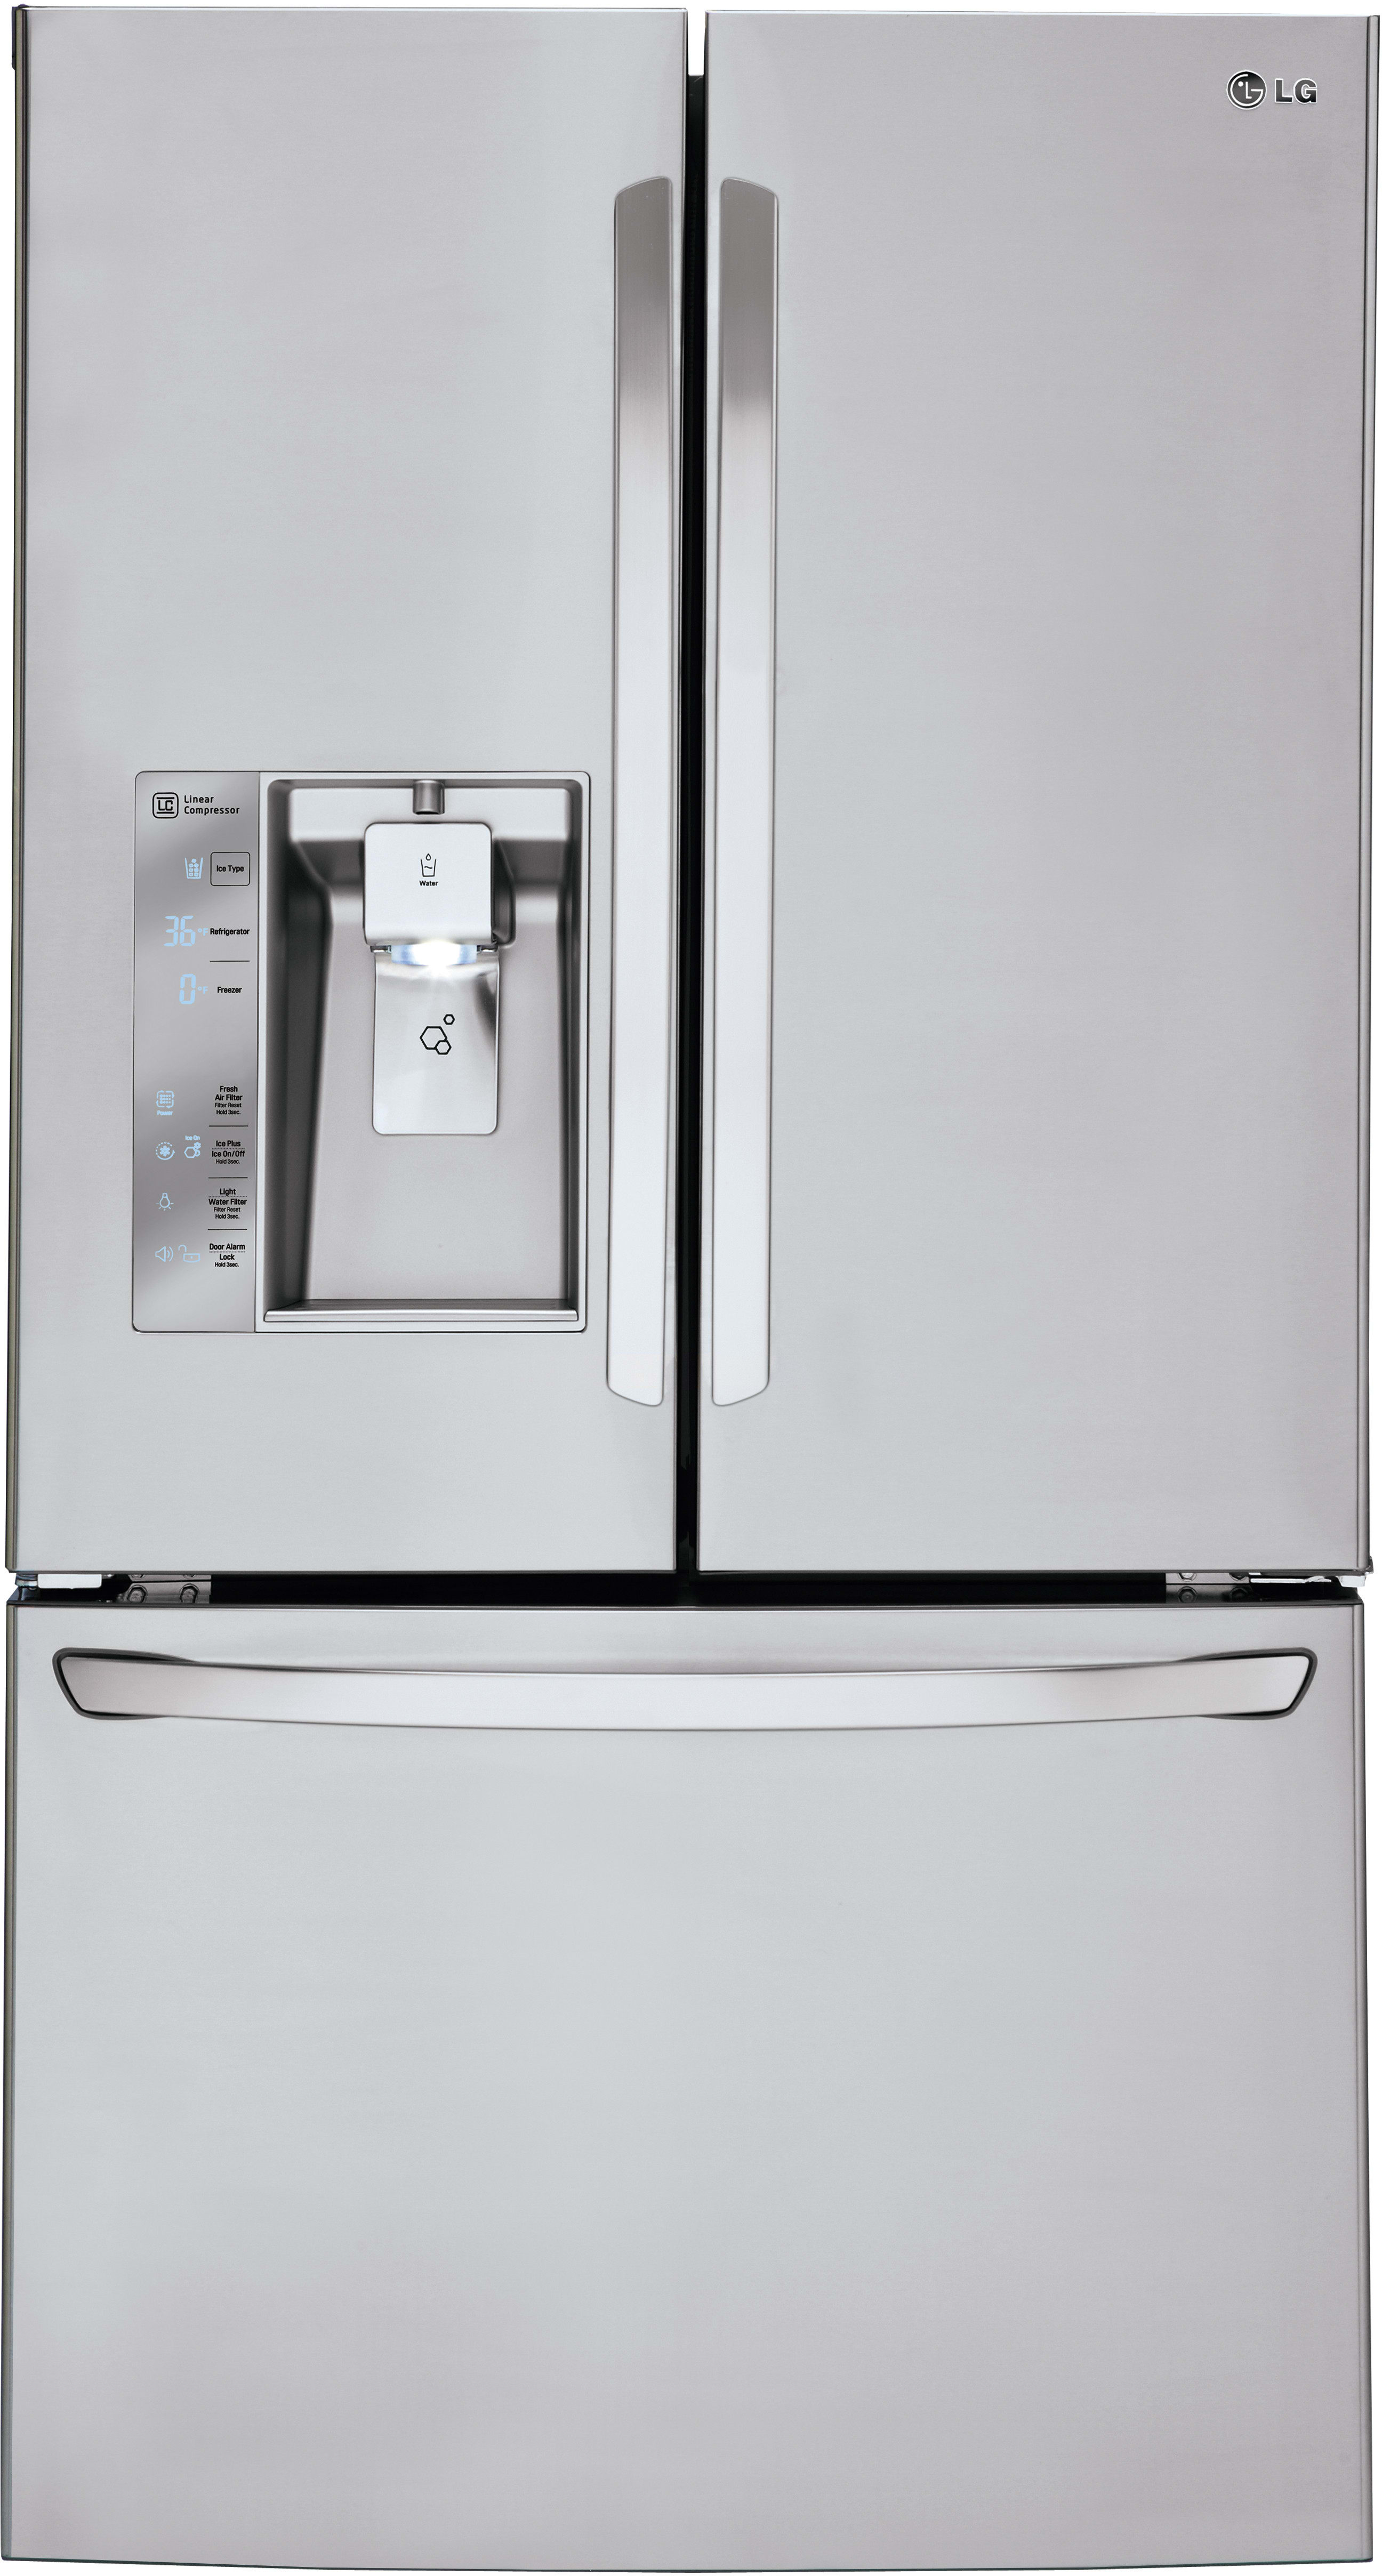 Ordinaire LG LFXS30726S 36 Inch French Door Refrigerator With Slim SpacePlus® Ice  System, Smart Cooling Plus®, SpillProtector™ Shelves, Air And Water  Filters, ...